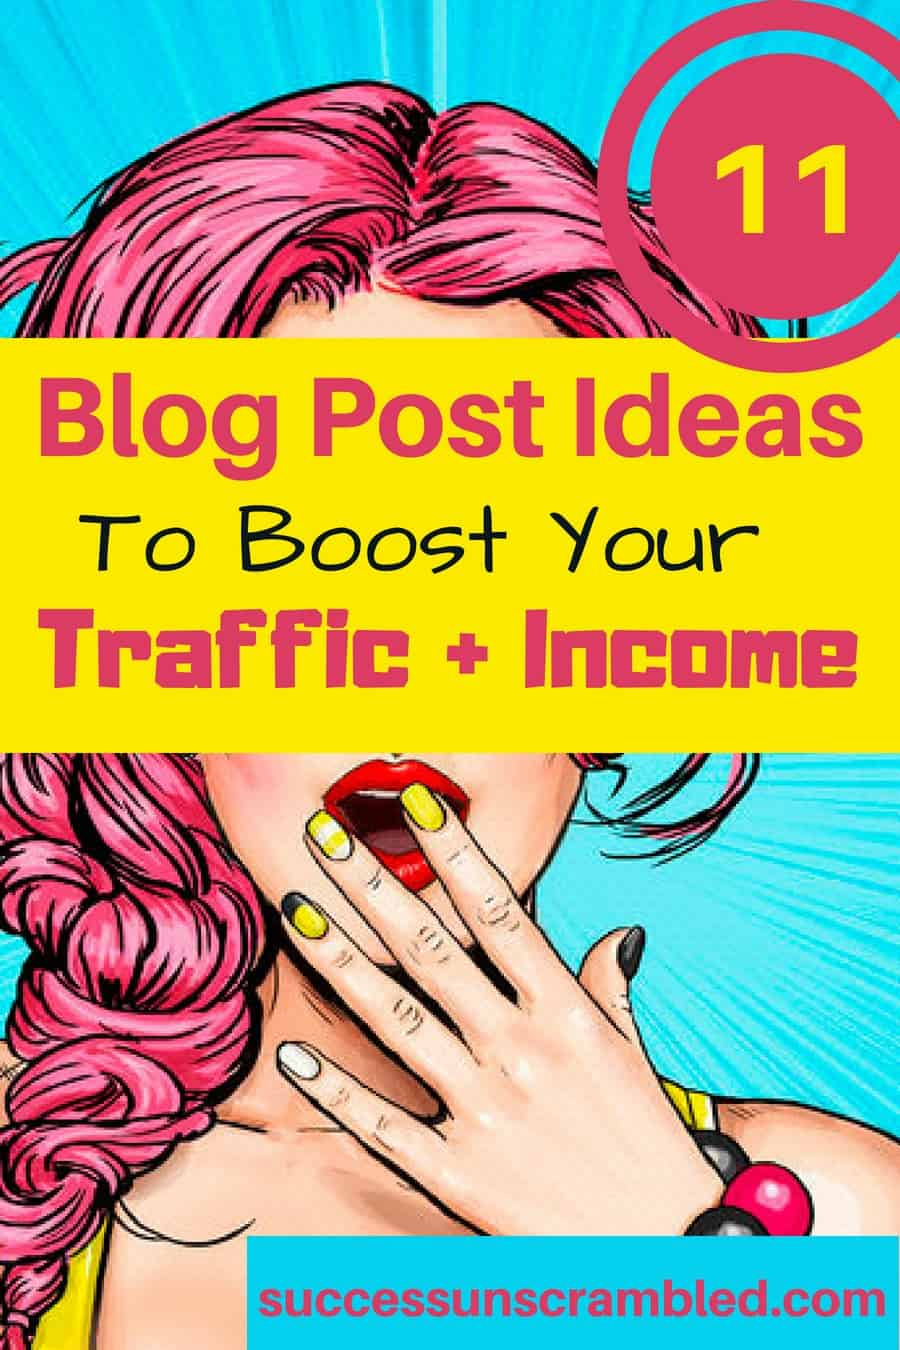 11 Blog Post Ideas To Boost Your Traffic + Income